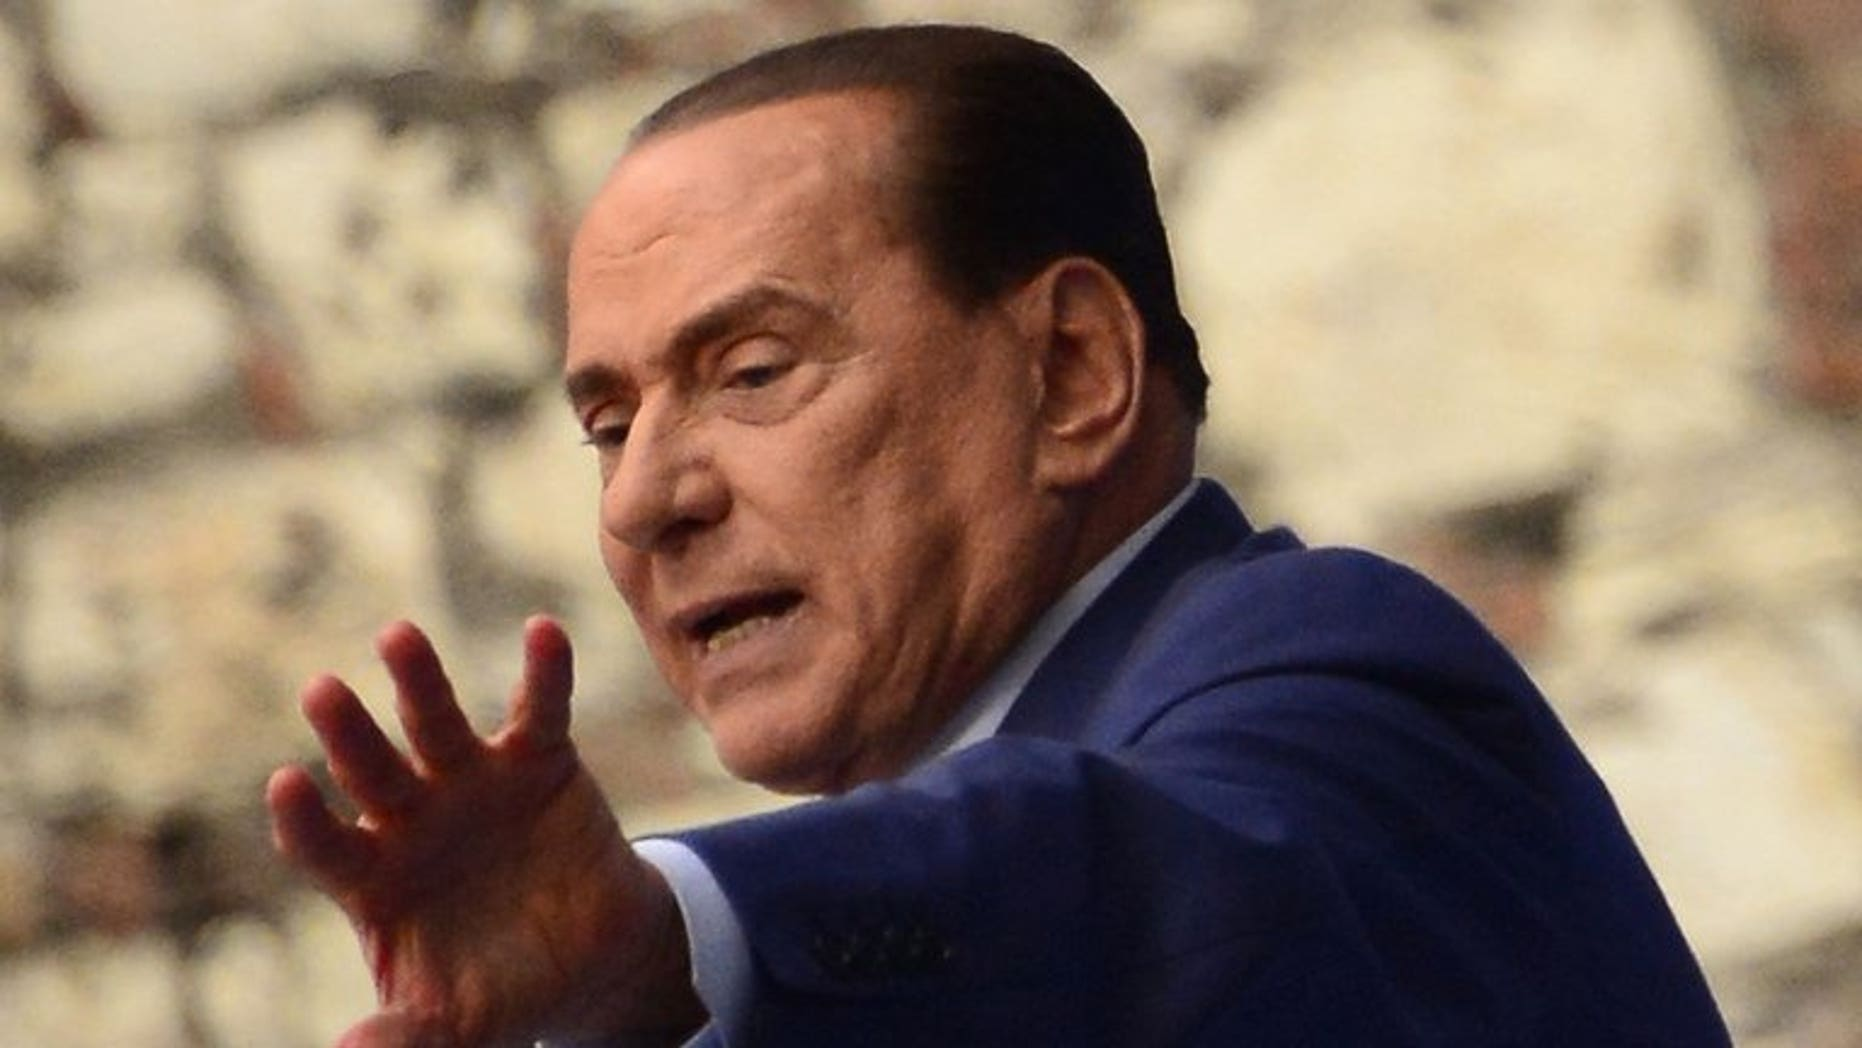 Former Italian premier Silvio Berlusconi delivers a speech during a rally in Brescia, on May 11, 2013. Italy is braced for a landmark ruling in a tax fraud case against Berlusconi that could eject the billionaire tycoon from parliament and upset the recession-hit country's fragile coalition government.